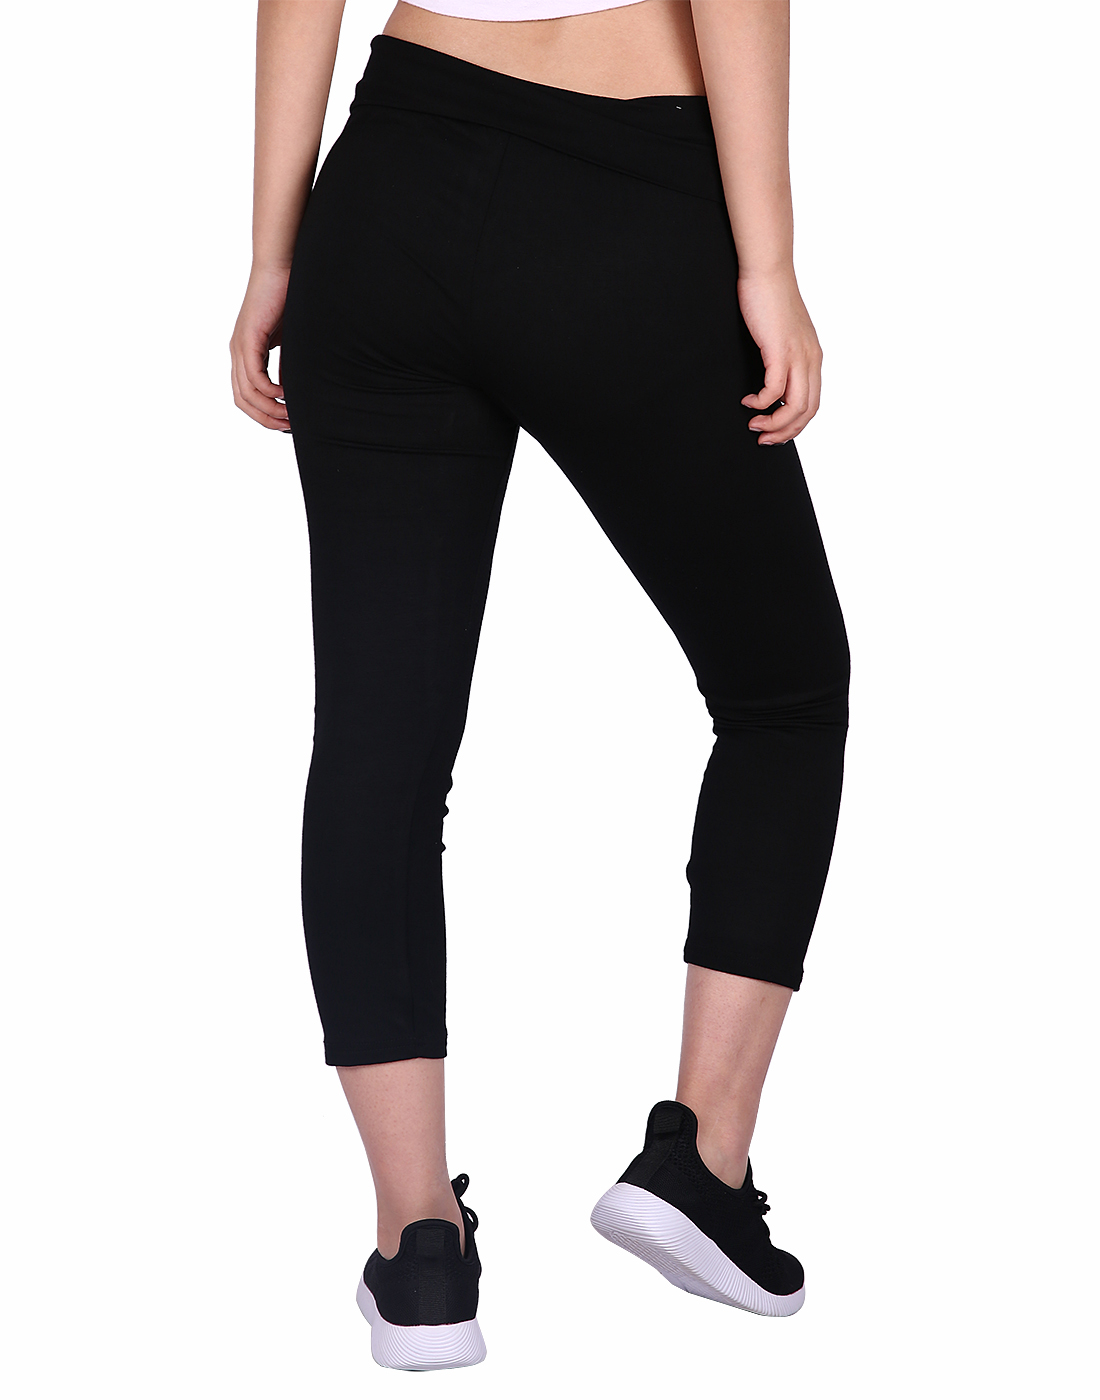 912ce95ad8 HDE Women's Yoga Capri Pants Color Block Fold Over Waist Workout Leggings ( Black w/Charcoal, Small)